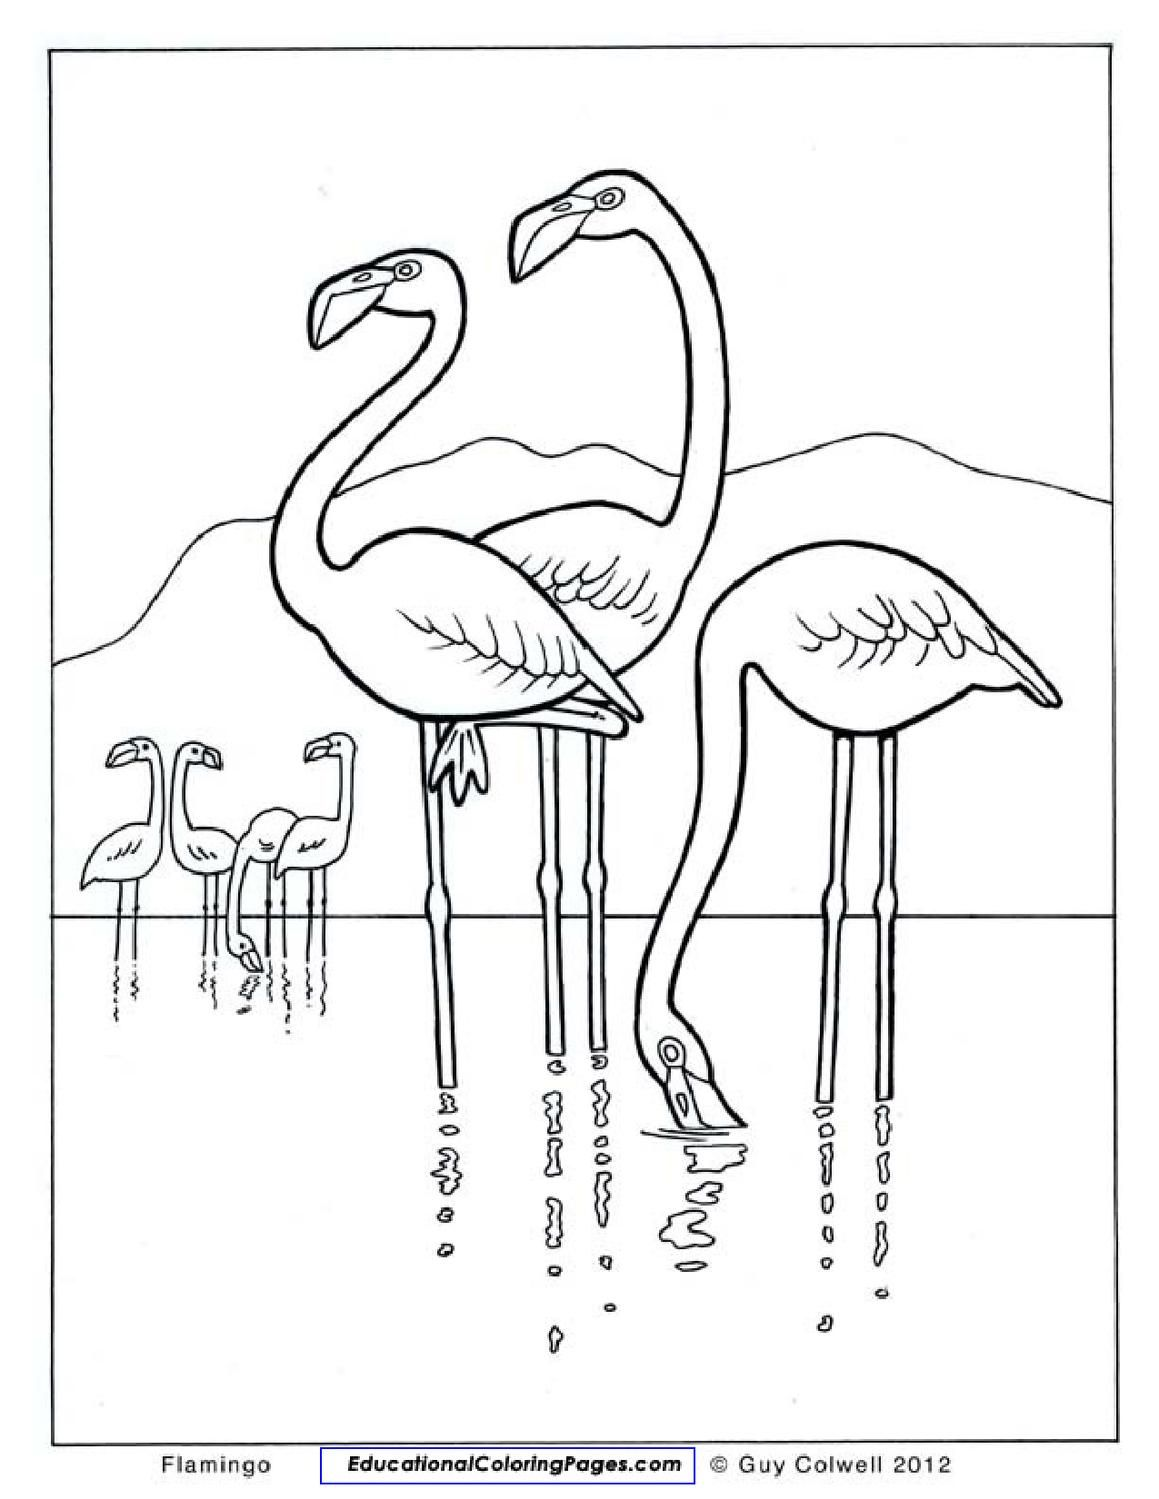 Natural Coloring Books | Zoology, Wild animals and Coloring books